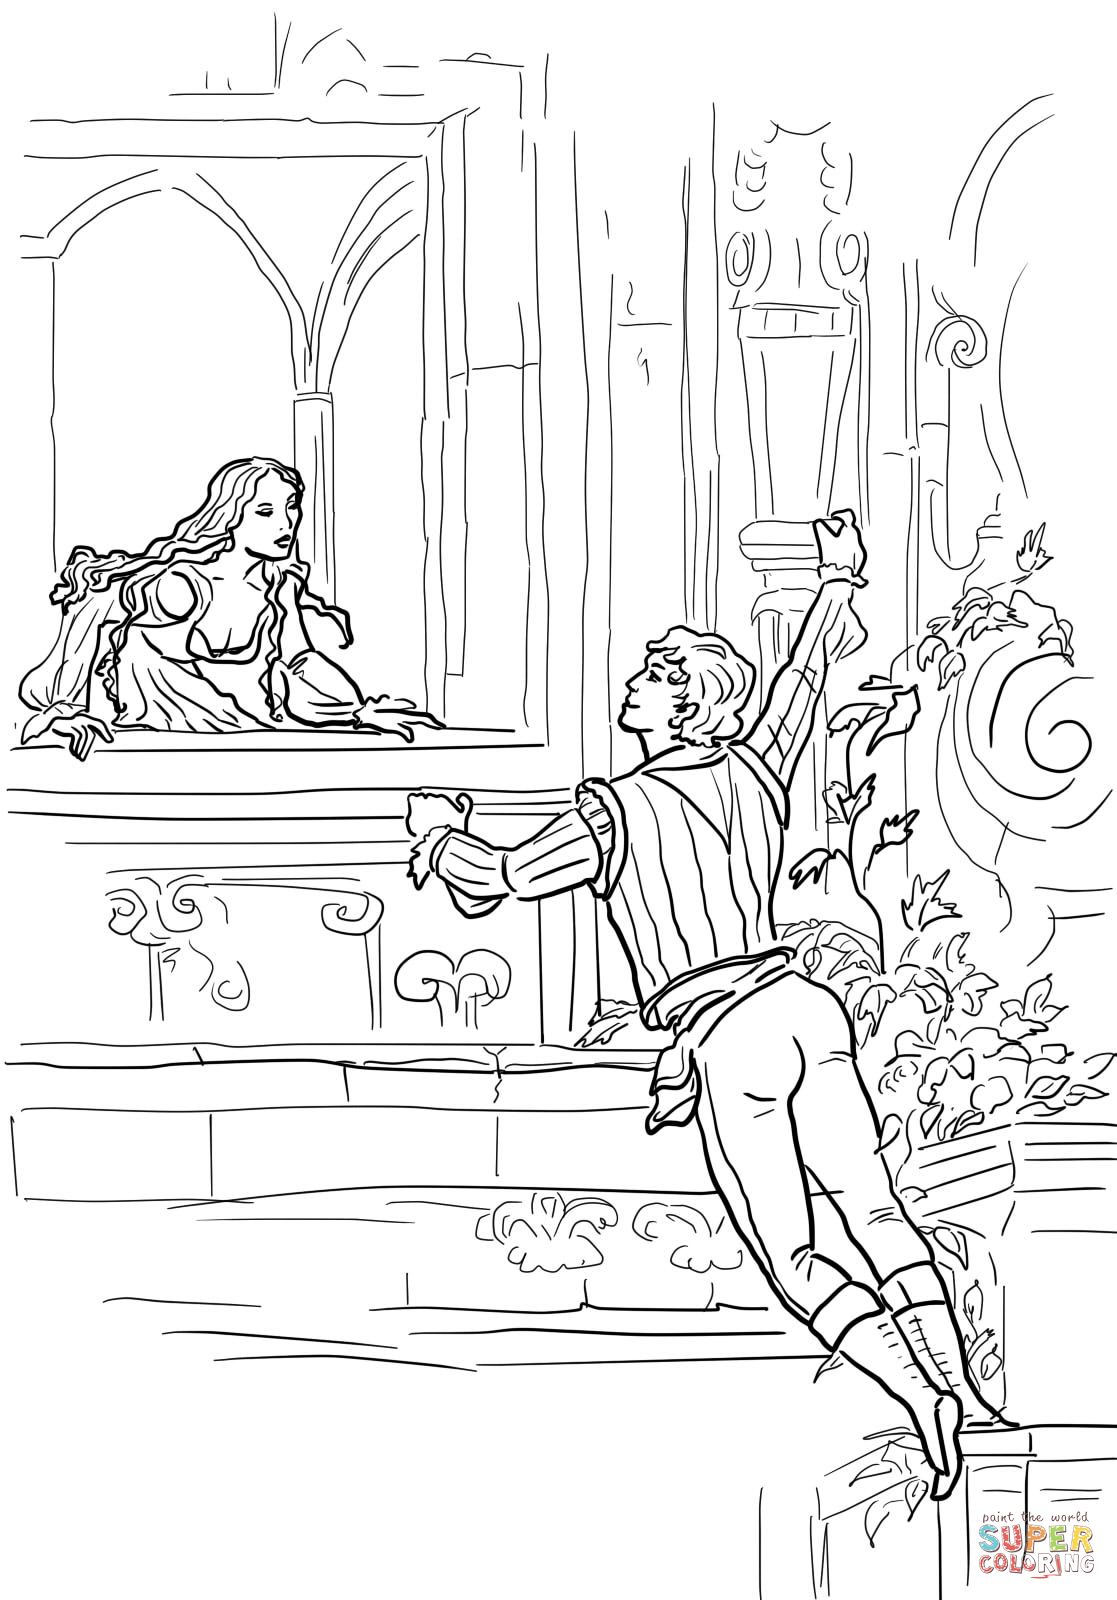 Romeo And Juliet Balcony Scene Coloring Page Supercoloring Com